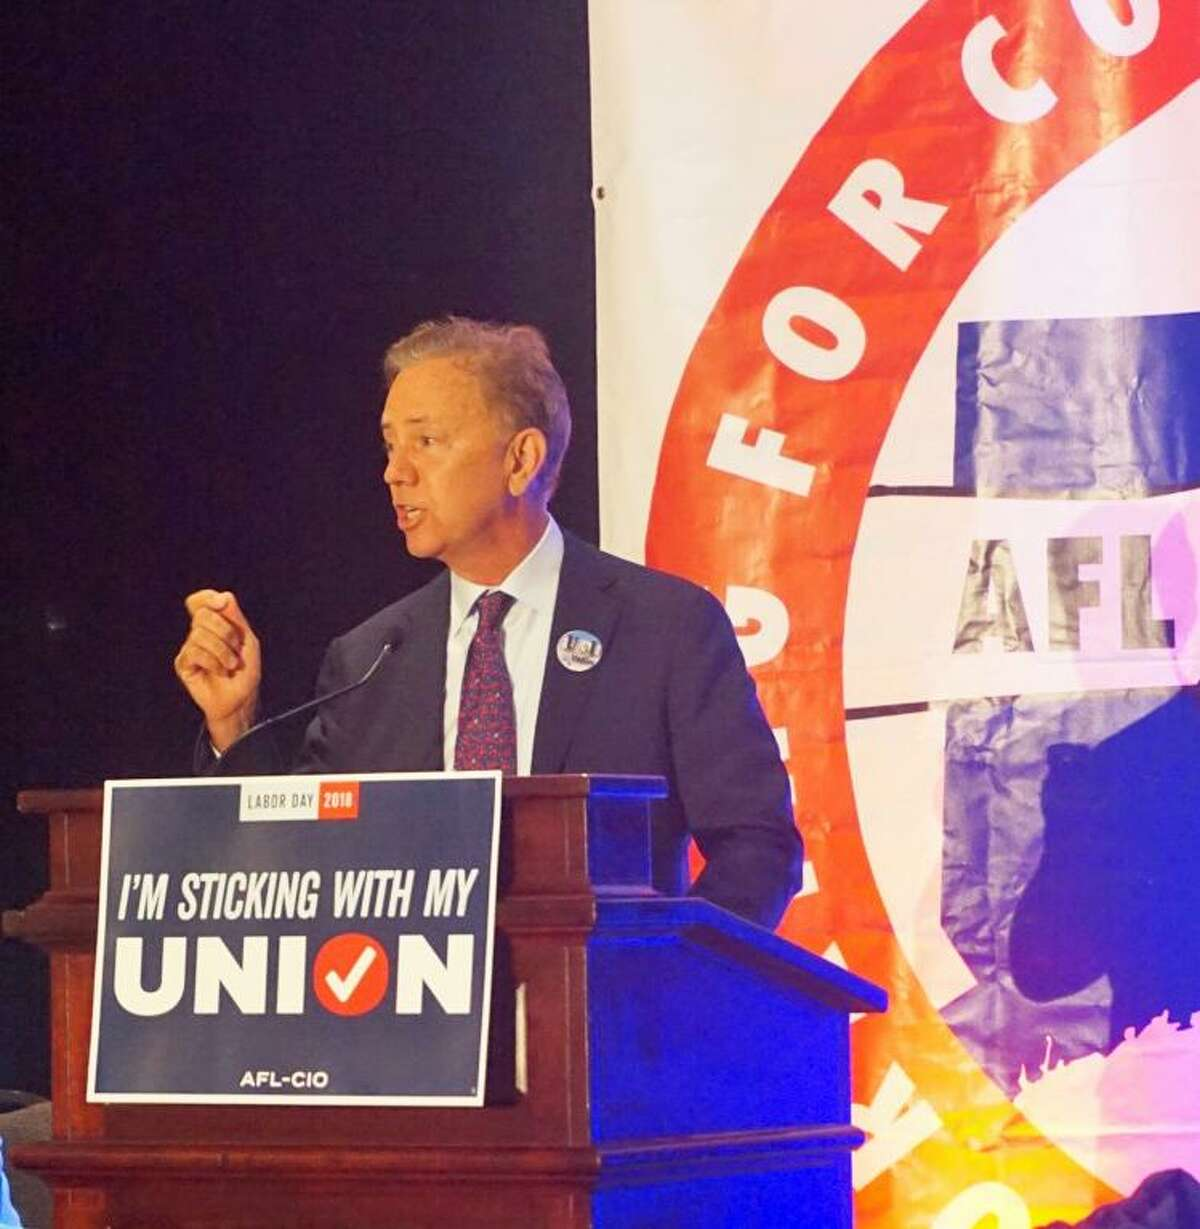 Ned Lamont, Democratic nominee for governor, spoke at a political convention of the Connecticut AFL-CIO at the Hartford Hilton Hotel on Friday August 31, 2018.